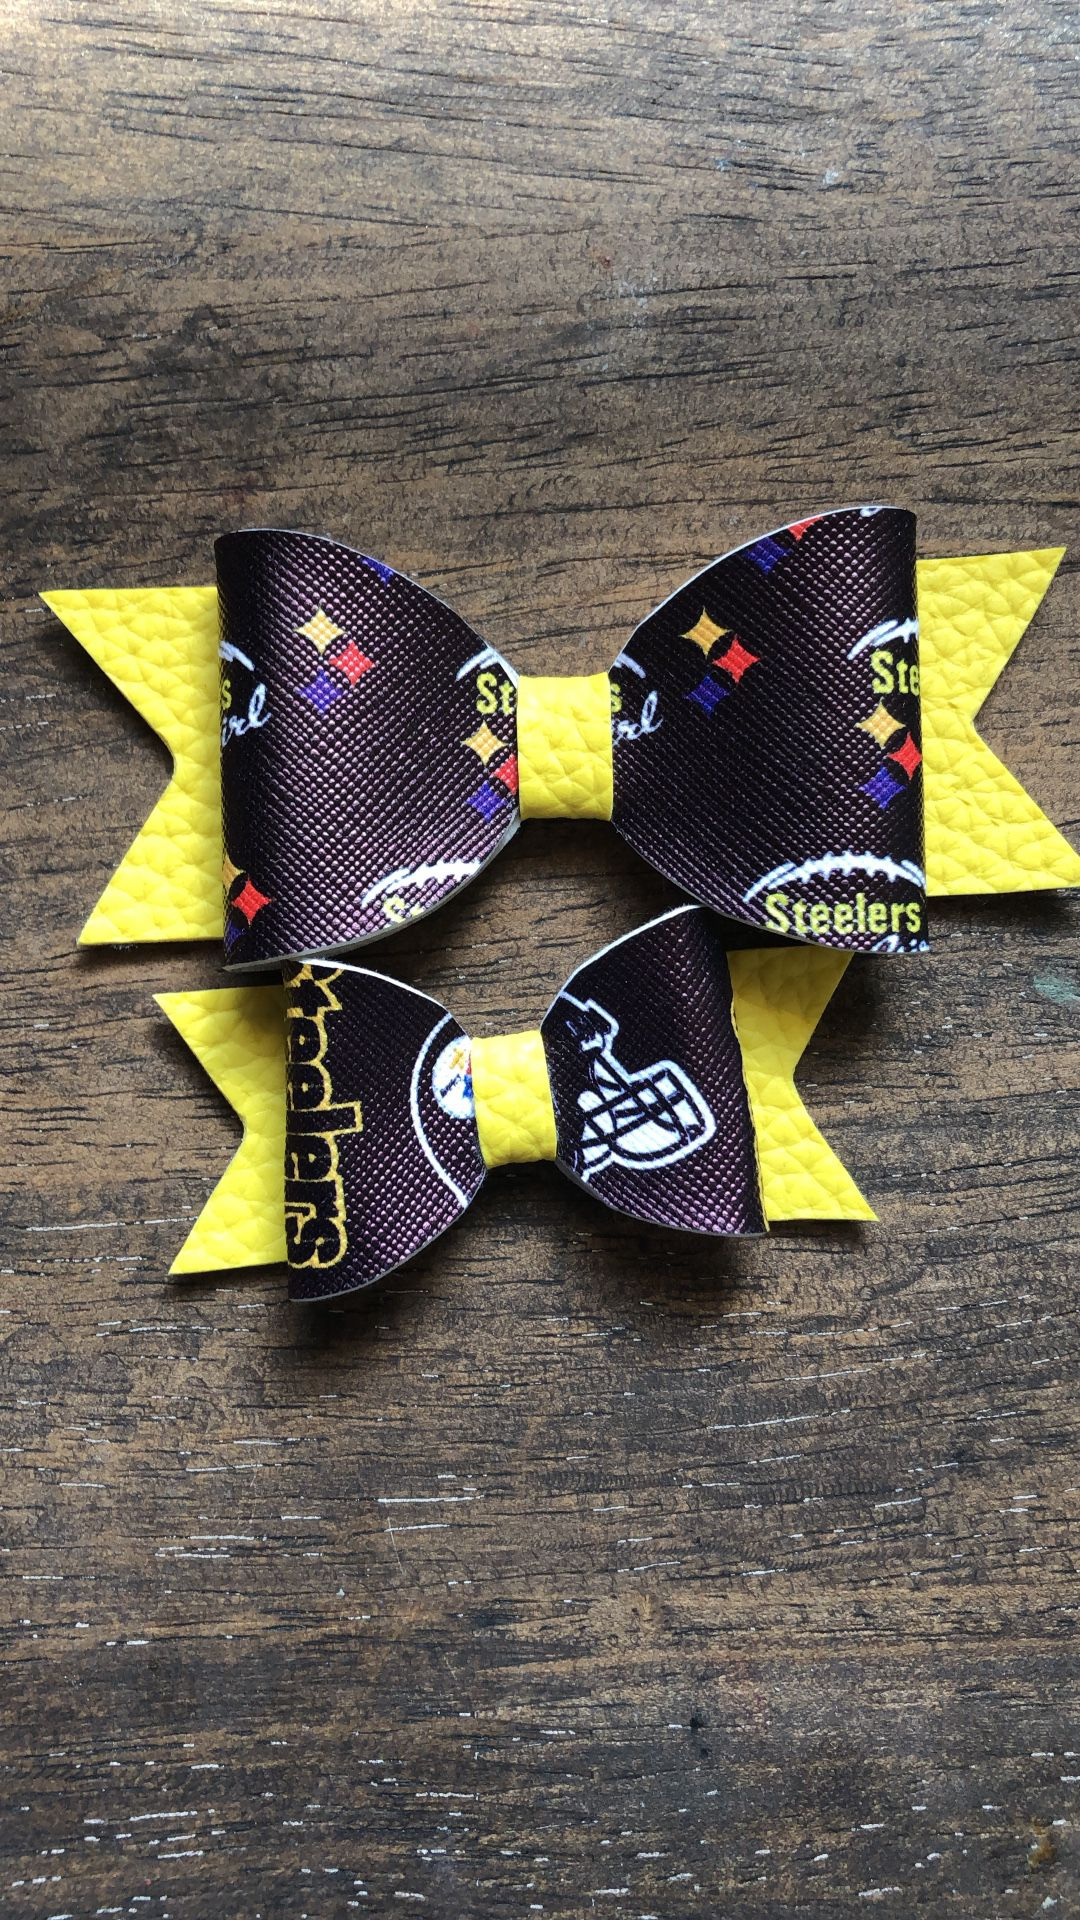 Steelers bows